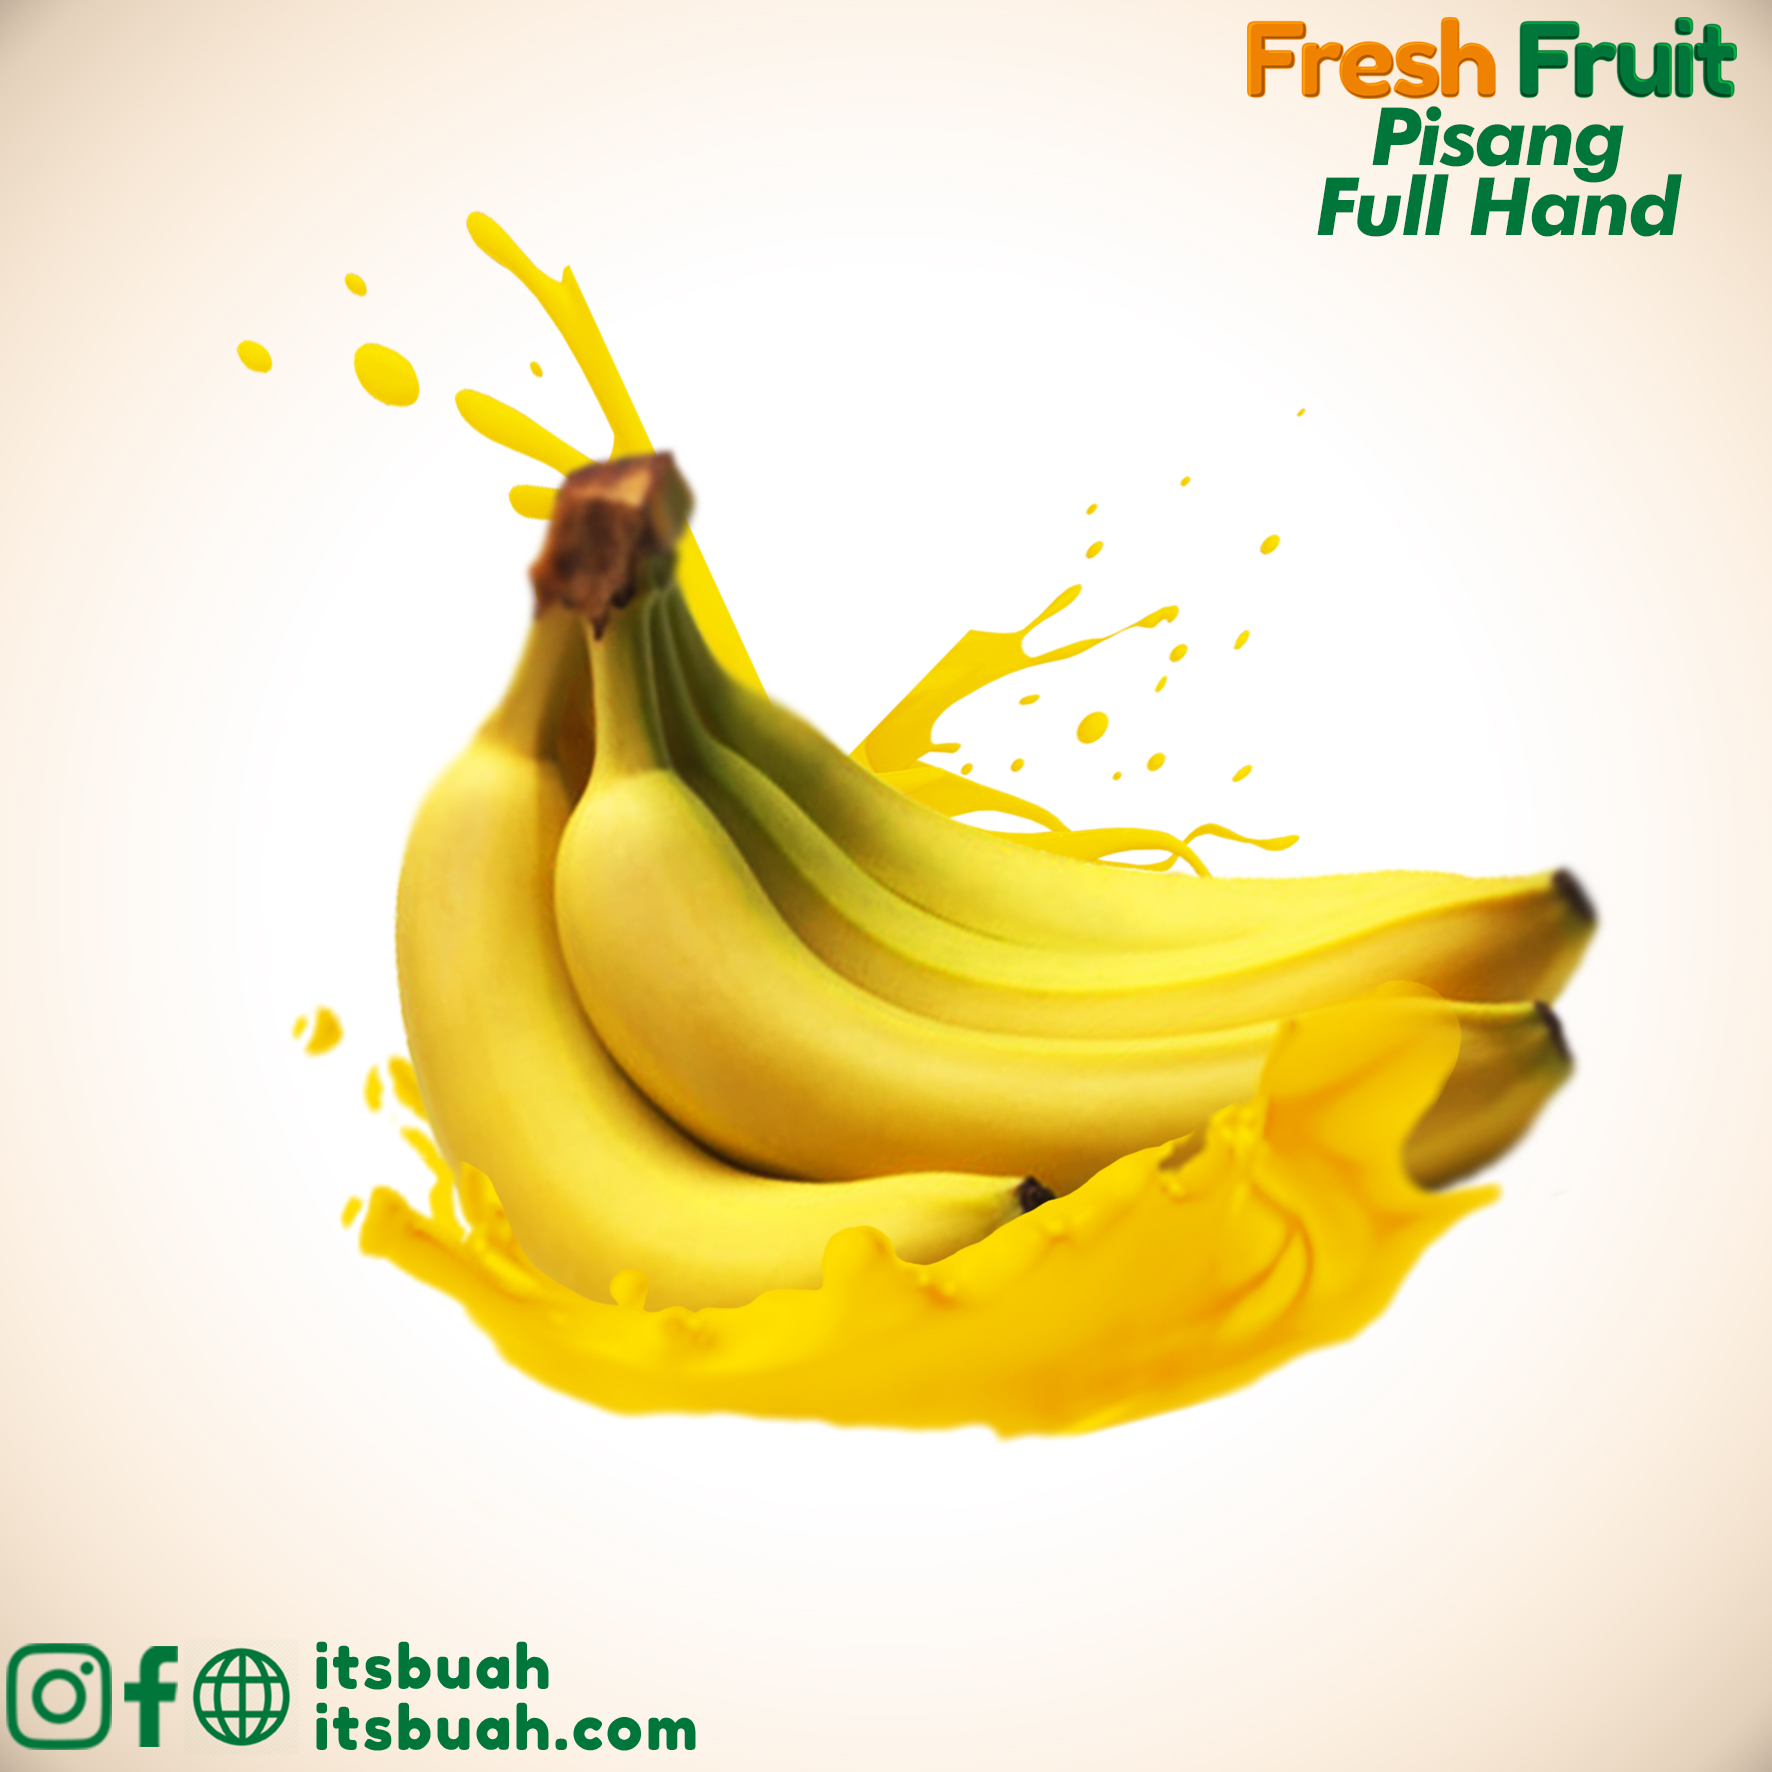 FB Ads - Fresh Fruit - Clean - Pisang FullHand